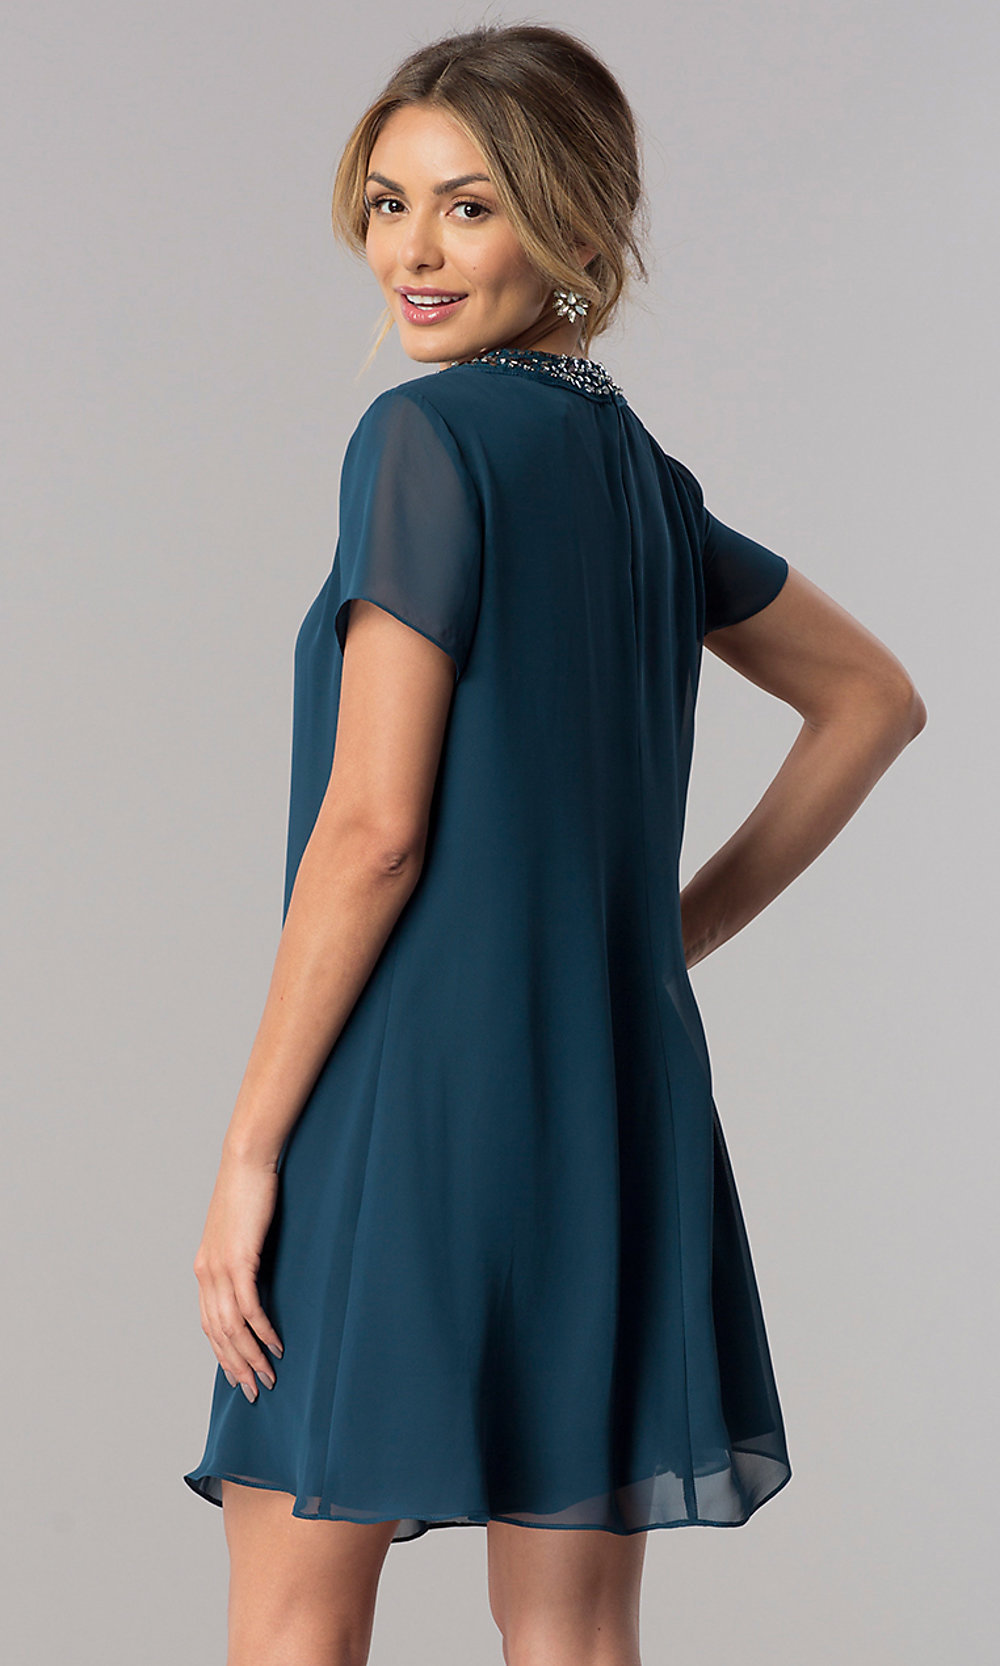 Short Teal Shift Party Dress with Sleeves - PromGirl